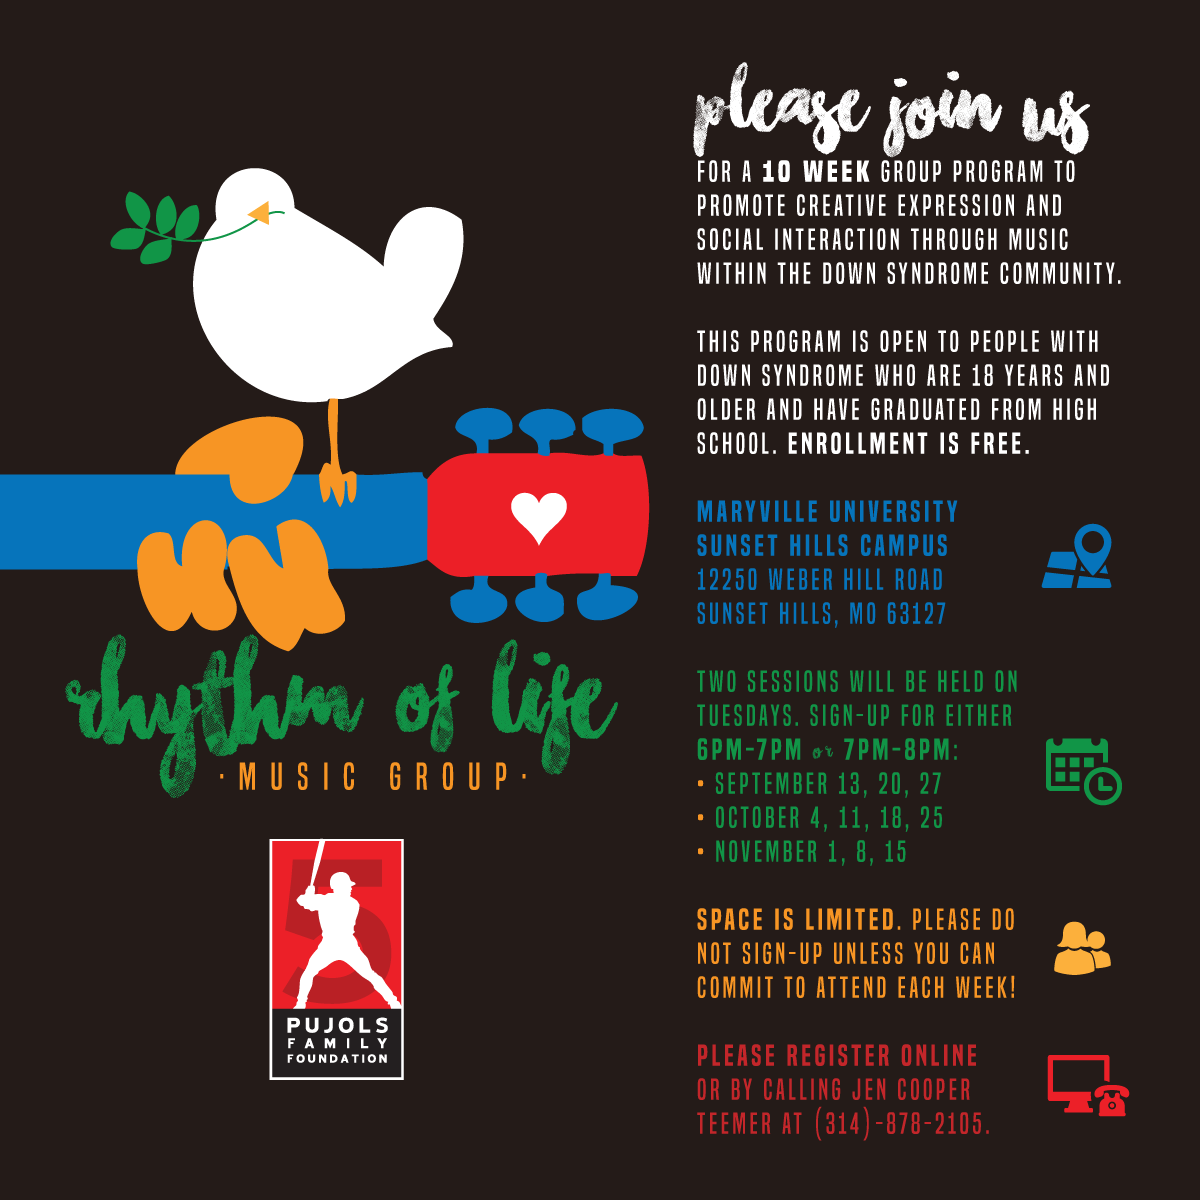 2016 Rhythm of Life Music Therapy Fall Session Invite